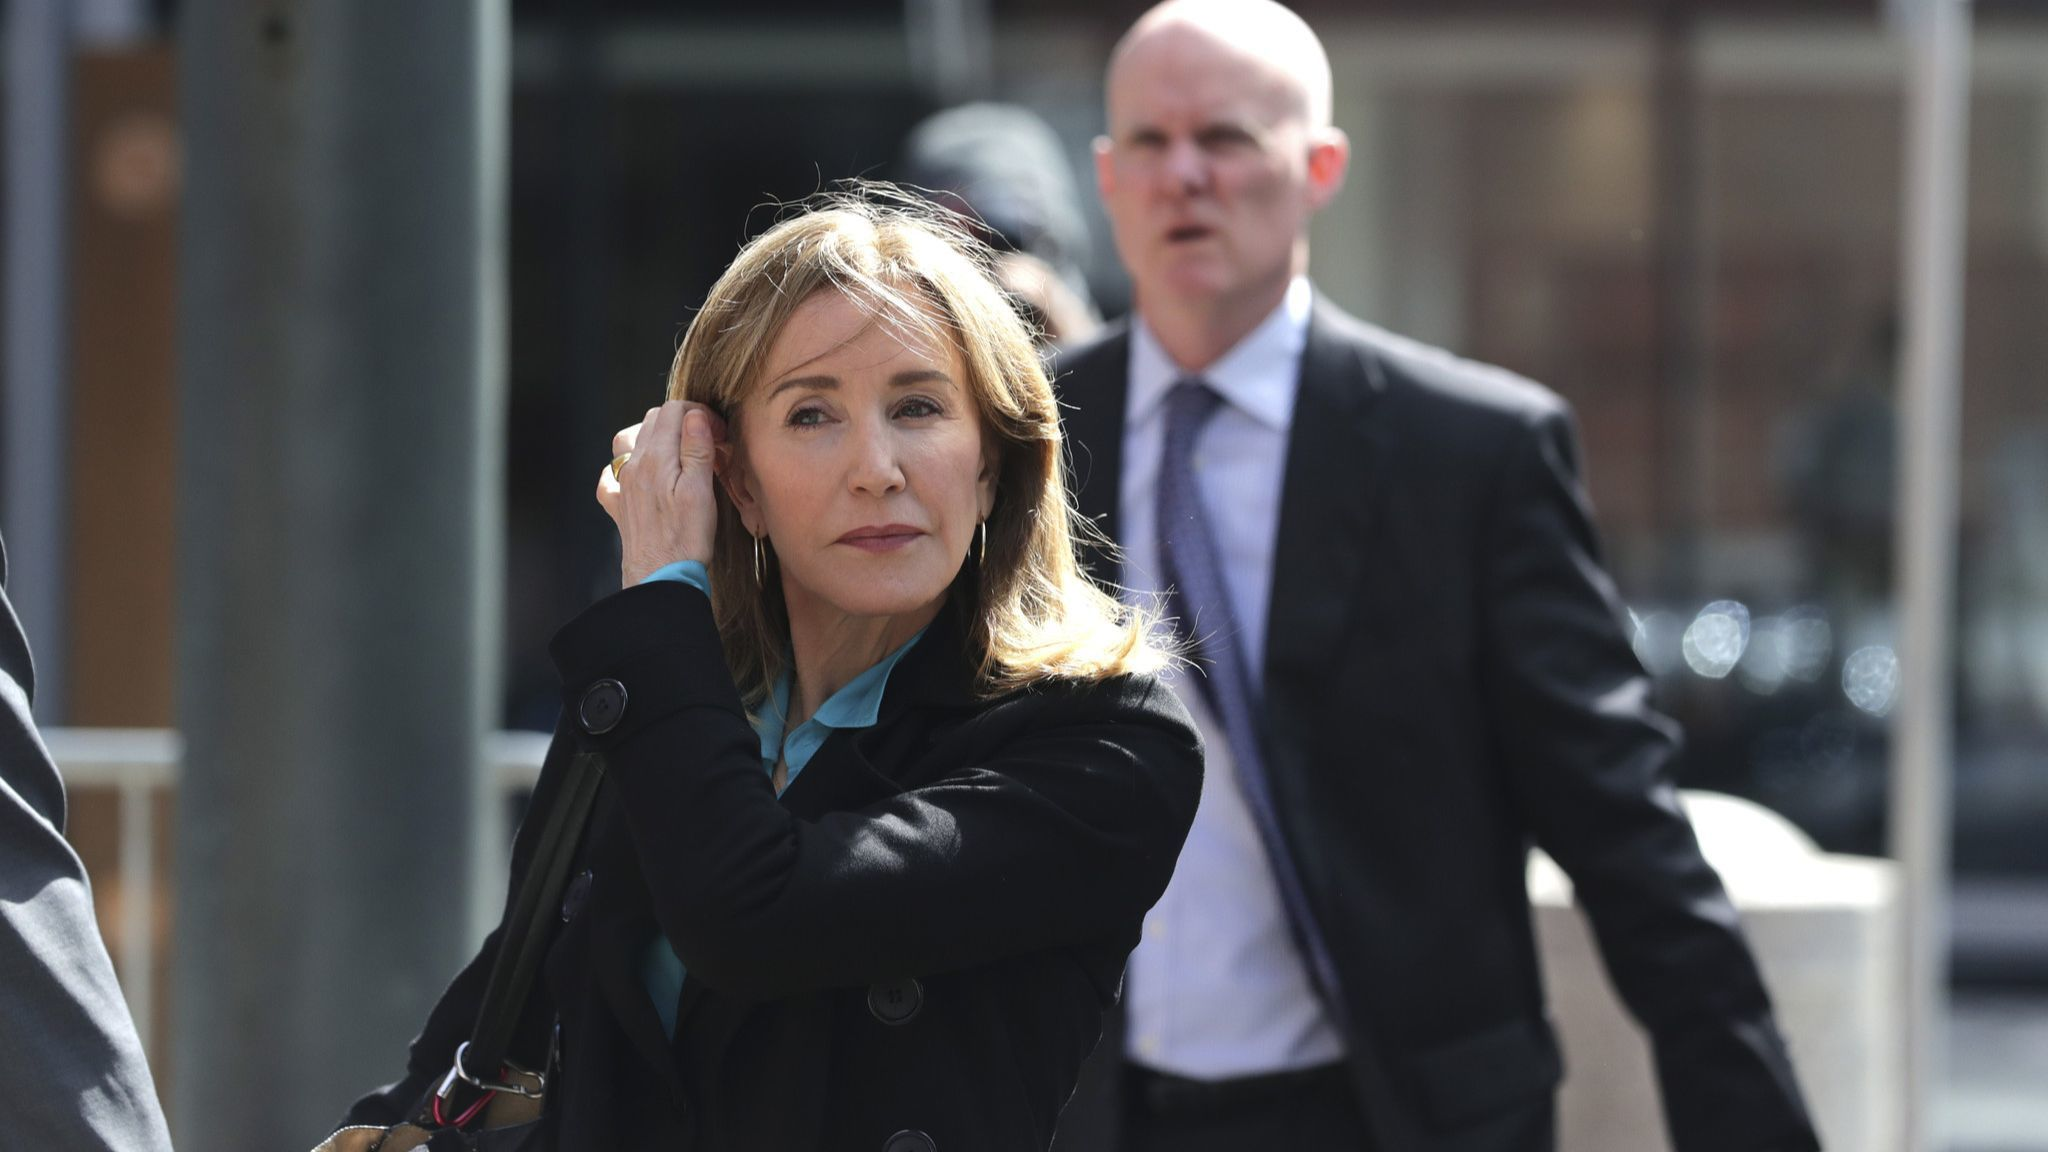 Felicity Huffman's costars speak out on college admissions scandal